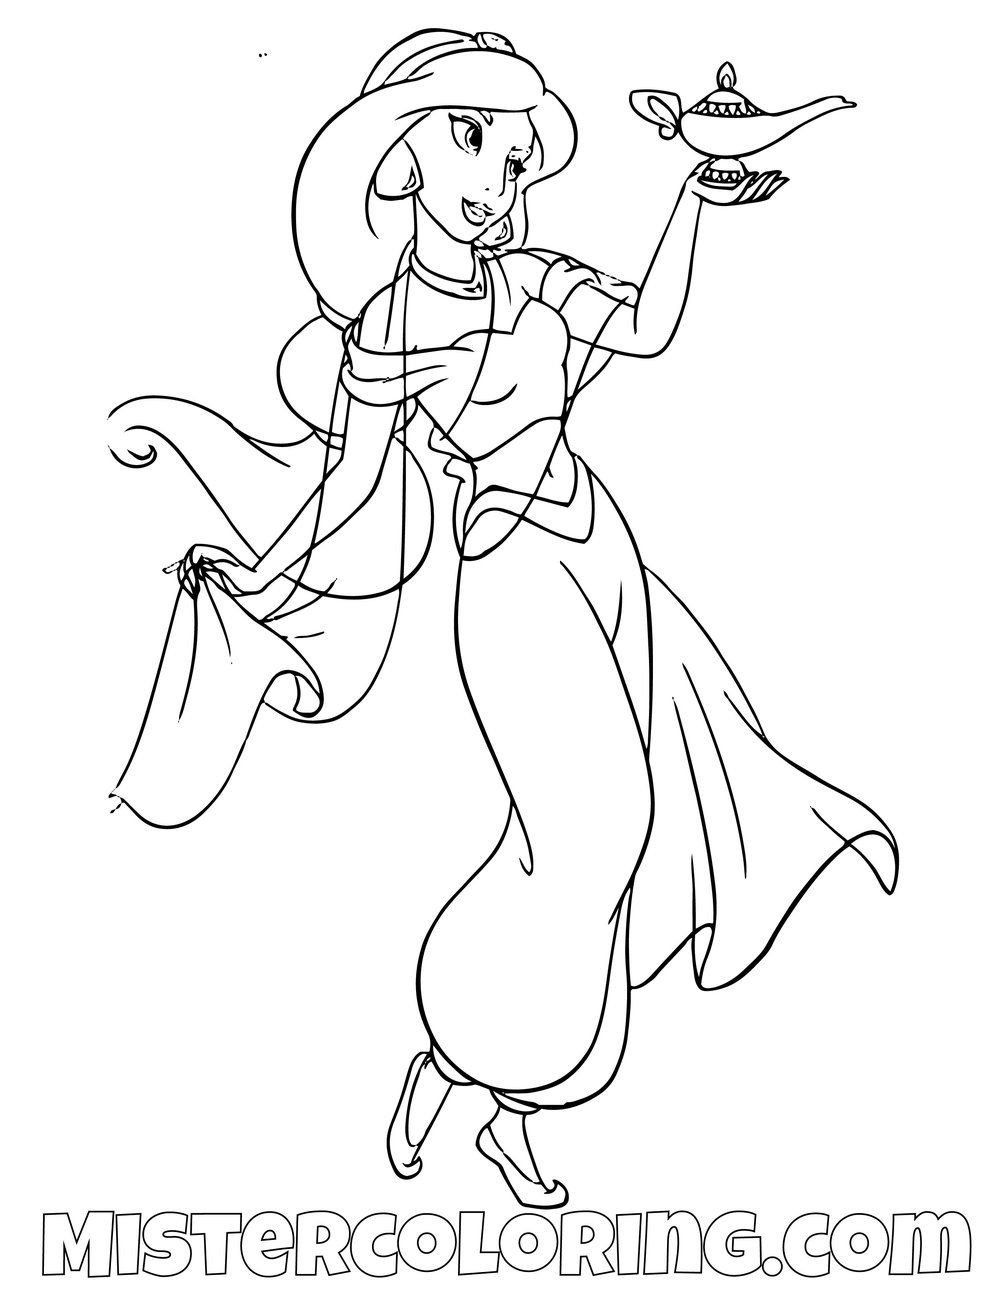 Aladdin And Jasmine Coloring Pages Princess Jasmine Holding Genie Lamp Aladdin Coloring Pag In 2020 Cartoon Coloring Pages Princess Coloring Pages Fairy Coloring Pages